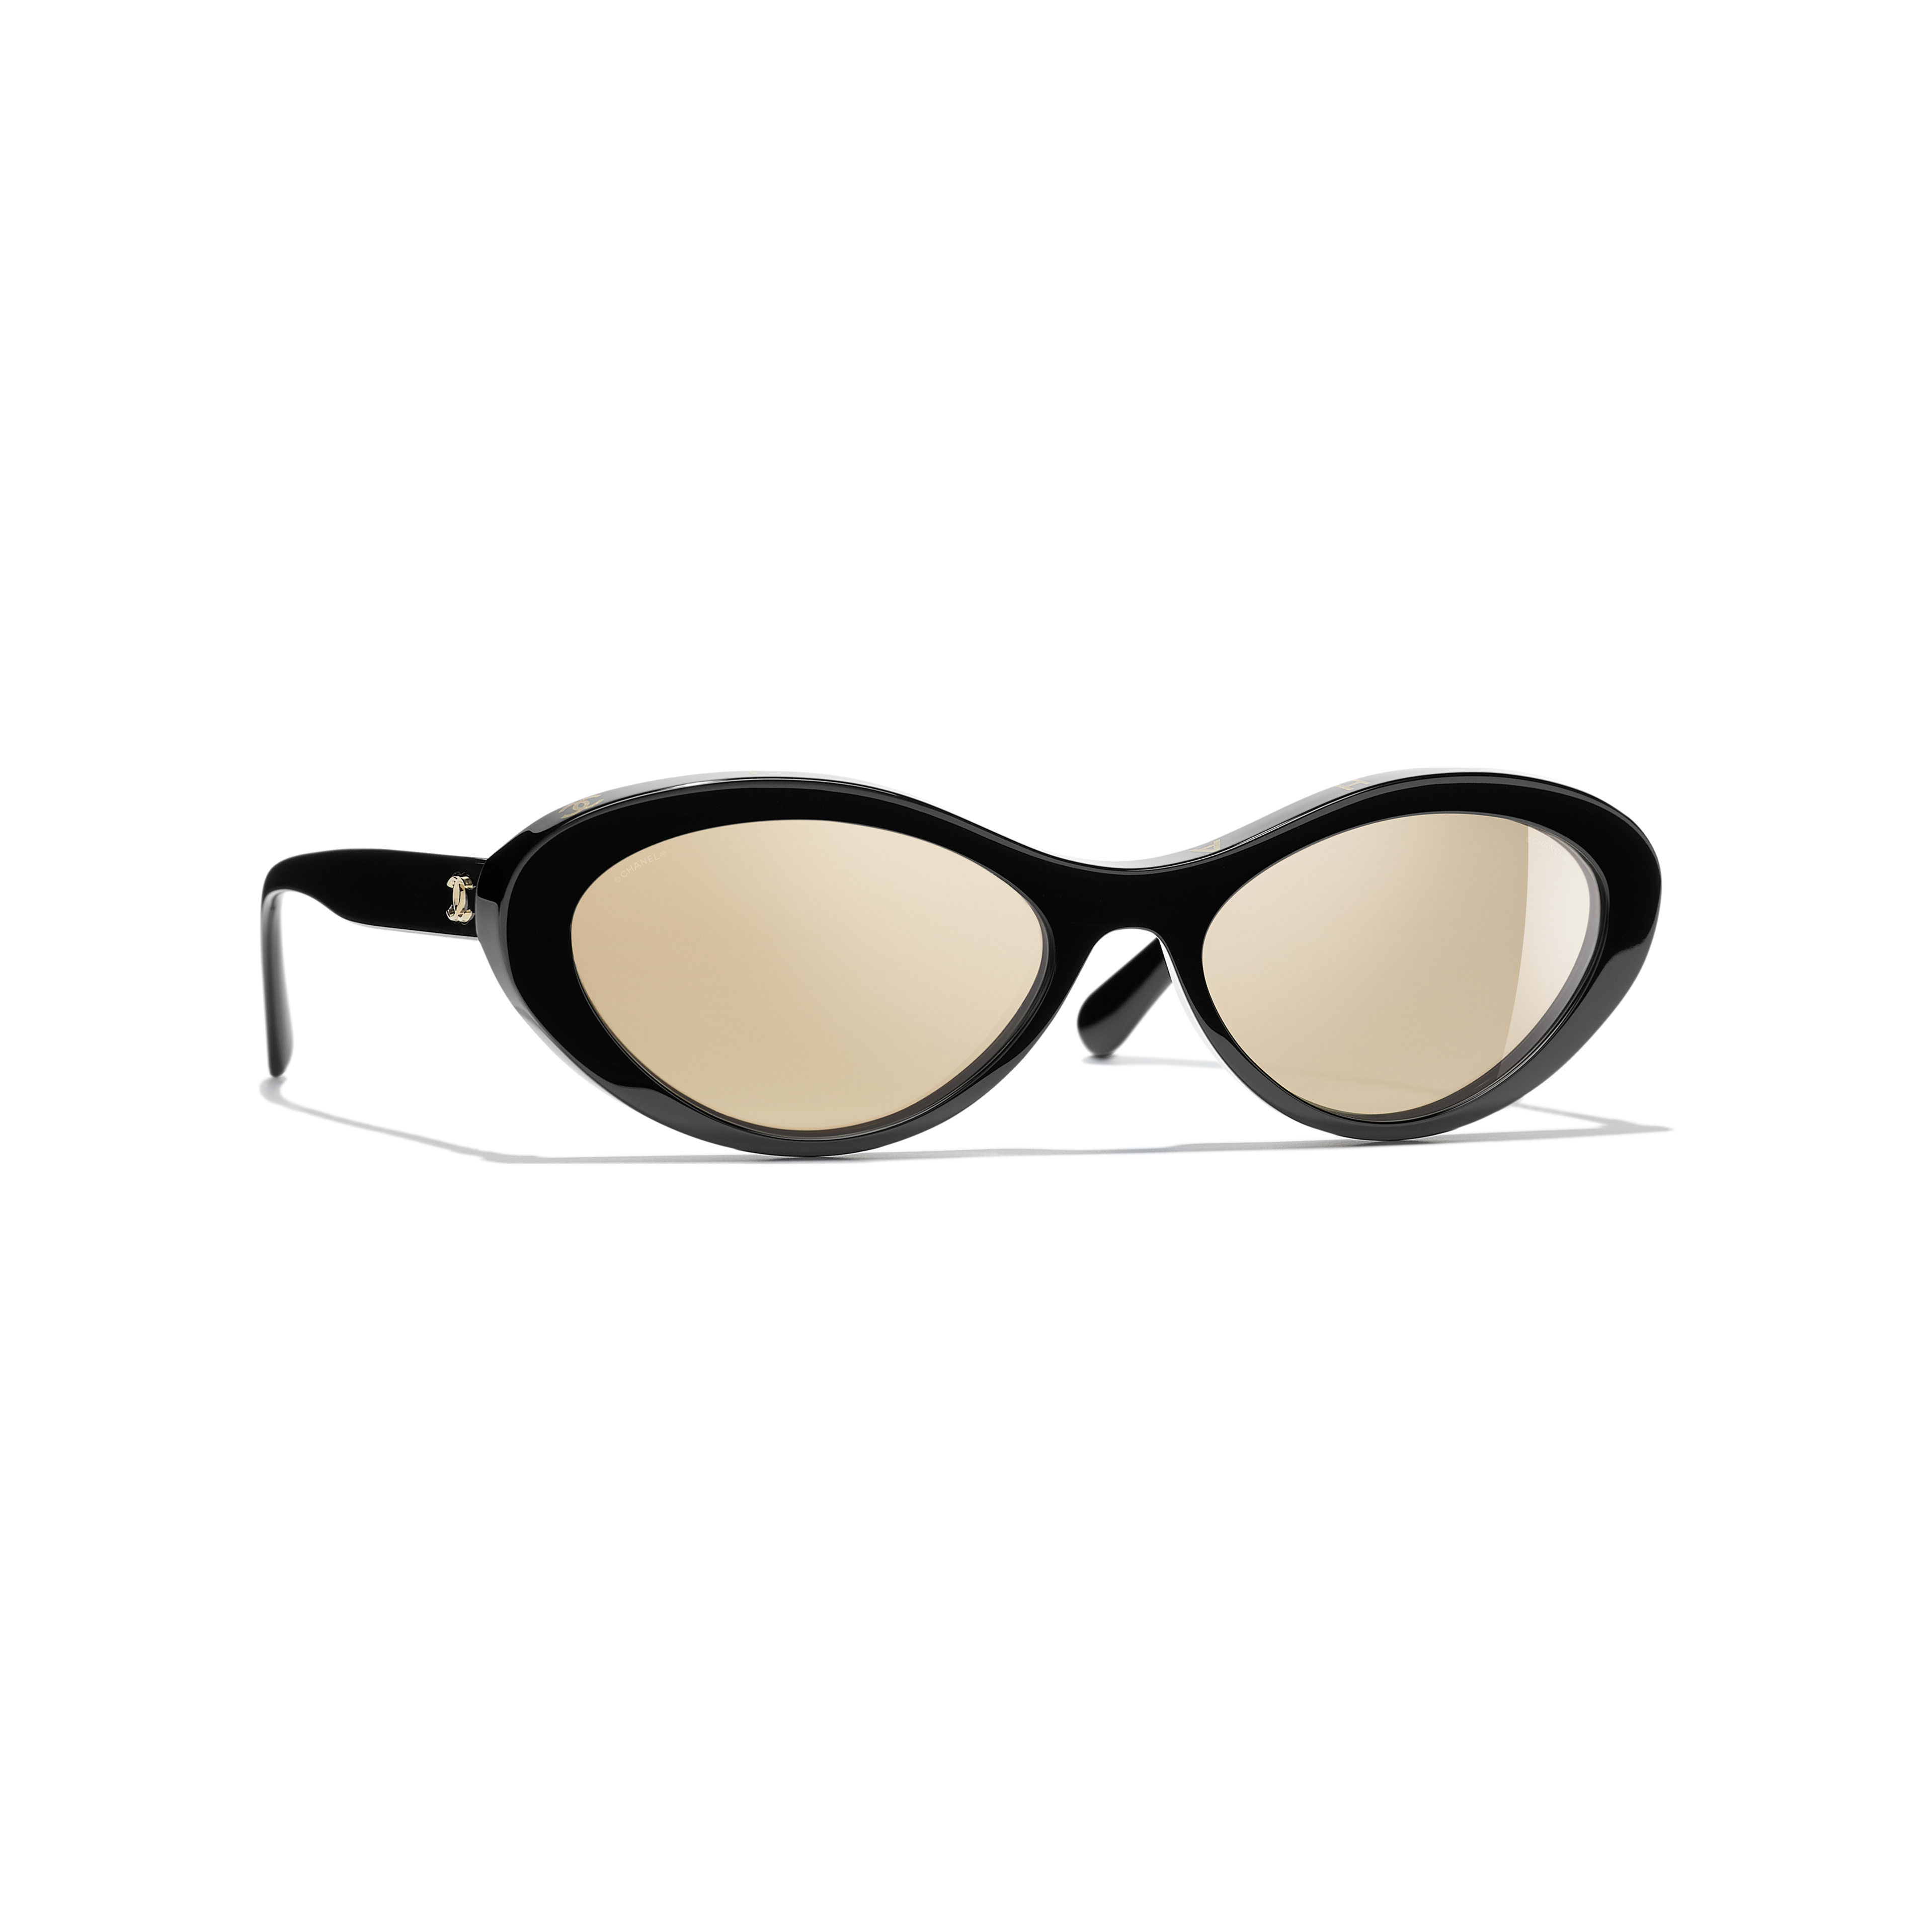 Oval Sunglasses - Black - Acetate - Default view - see full sized version